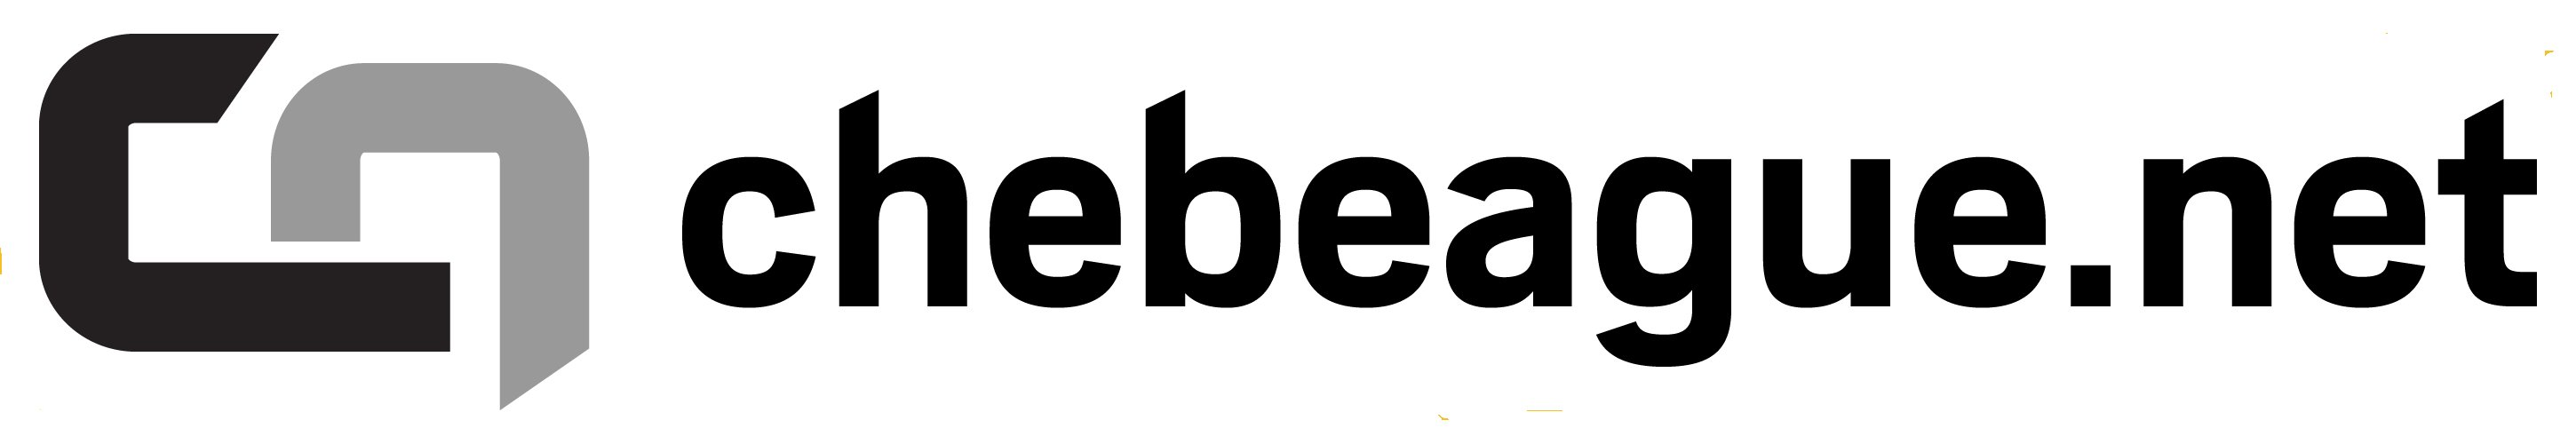 Chebeague logo